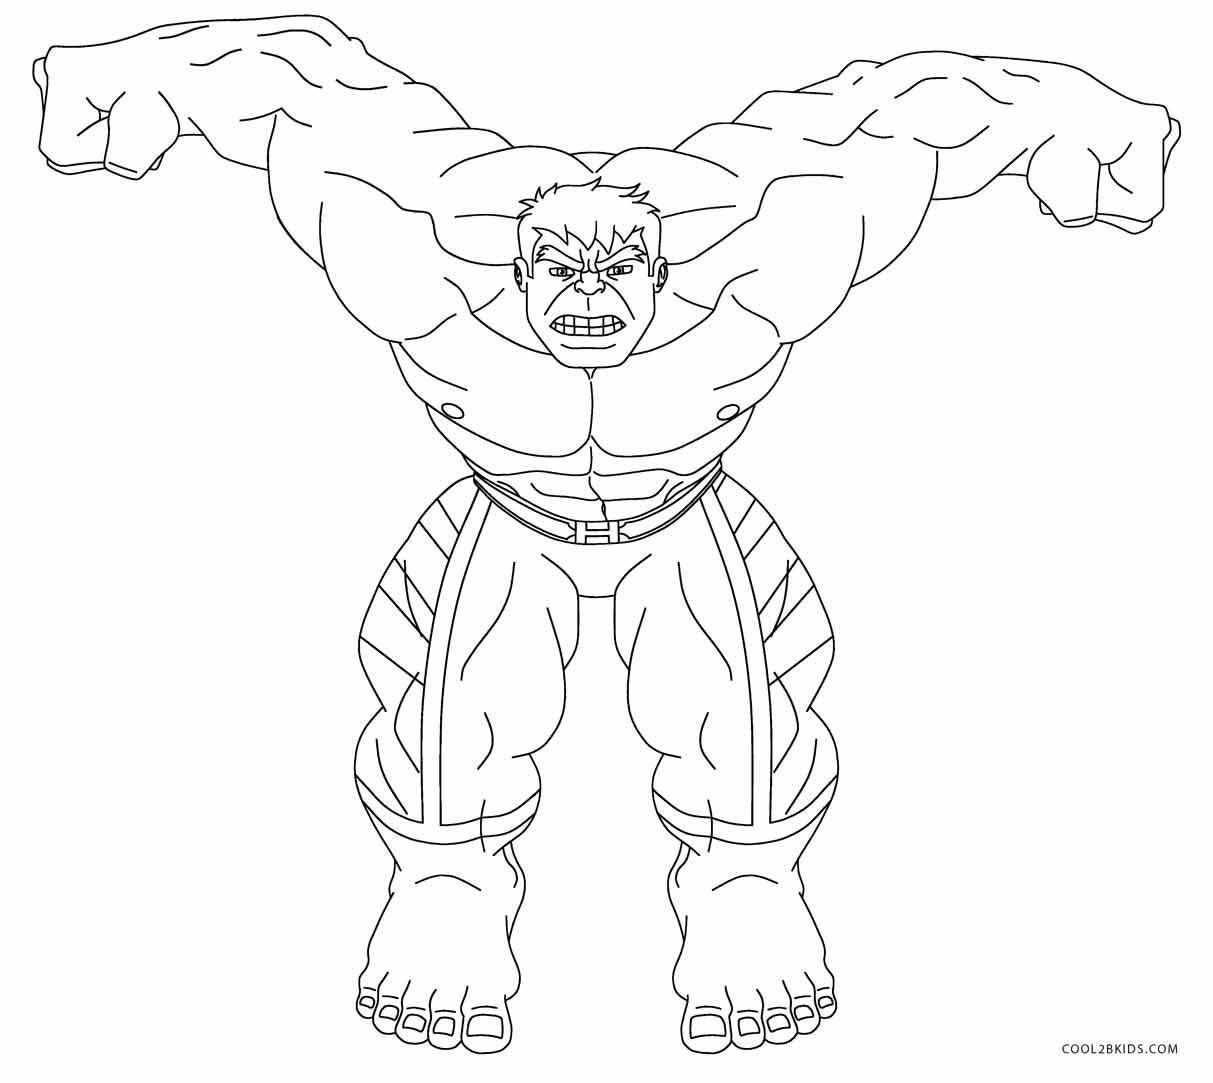 coloring pages incredible hulk - photo#30